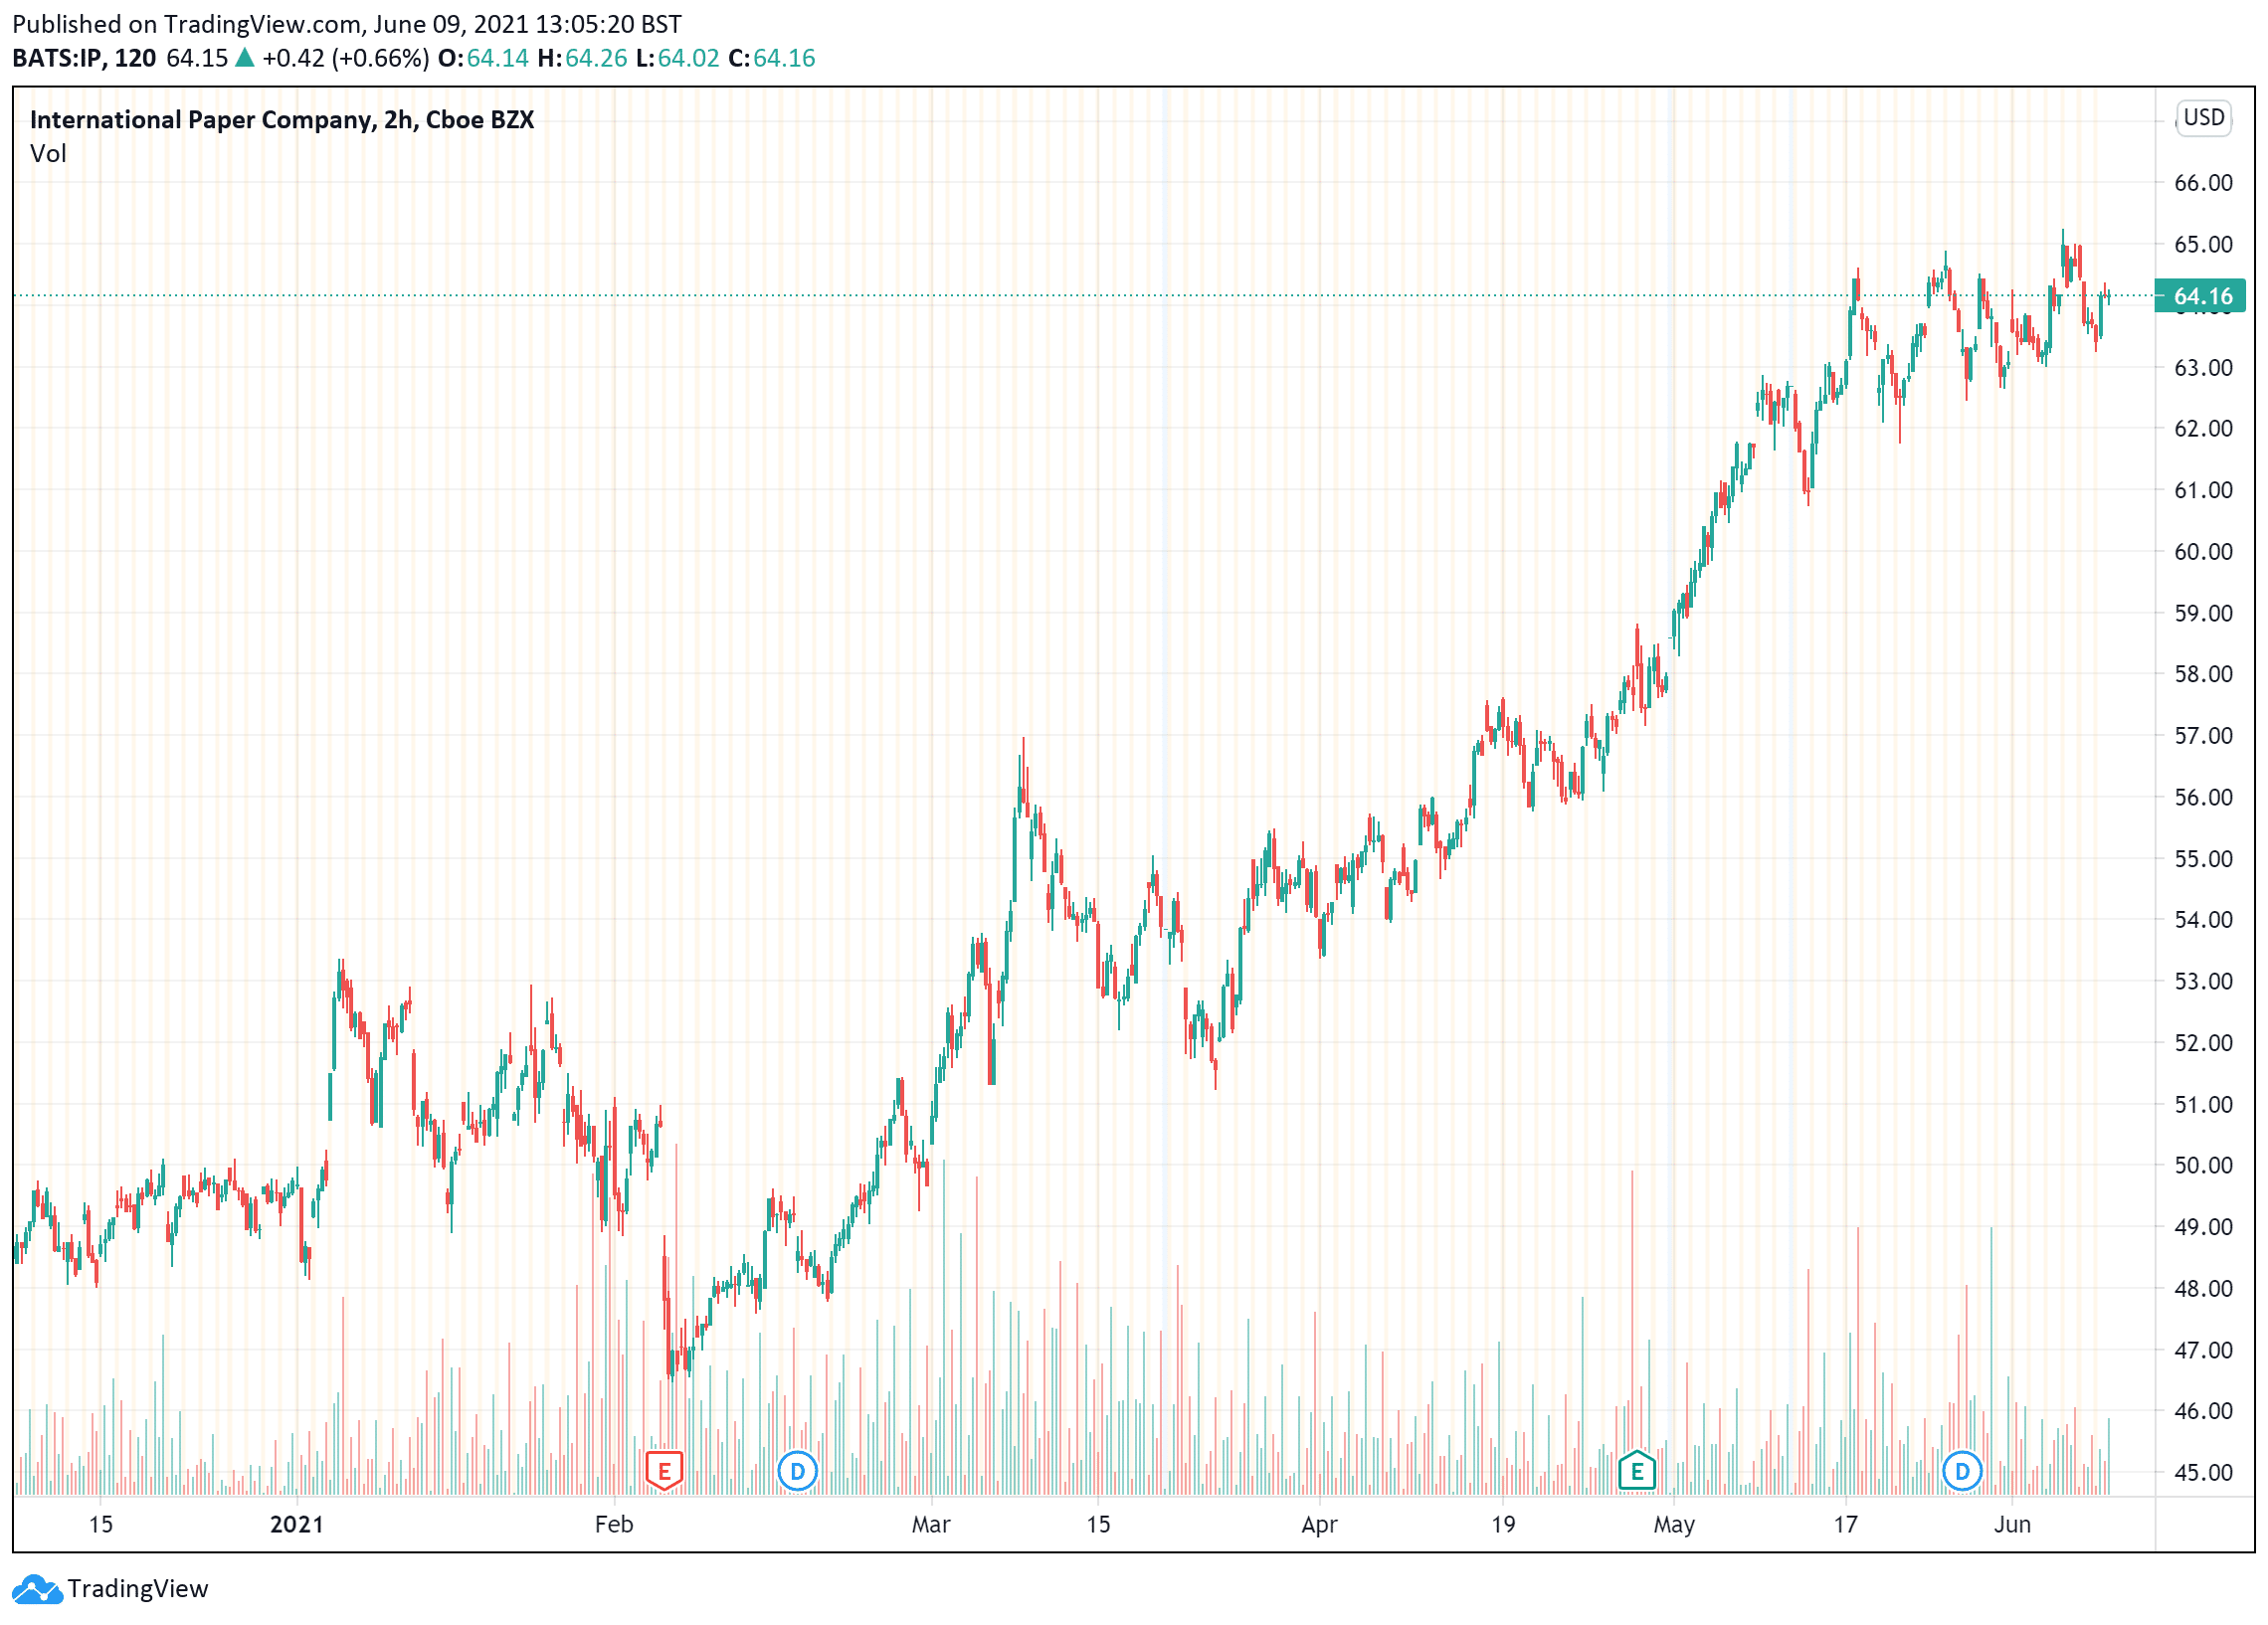 Dividend Shares: IPC price chart June 9